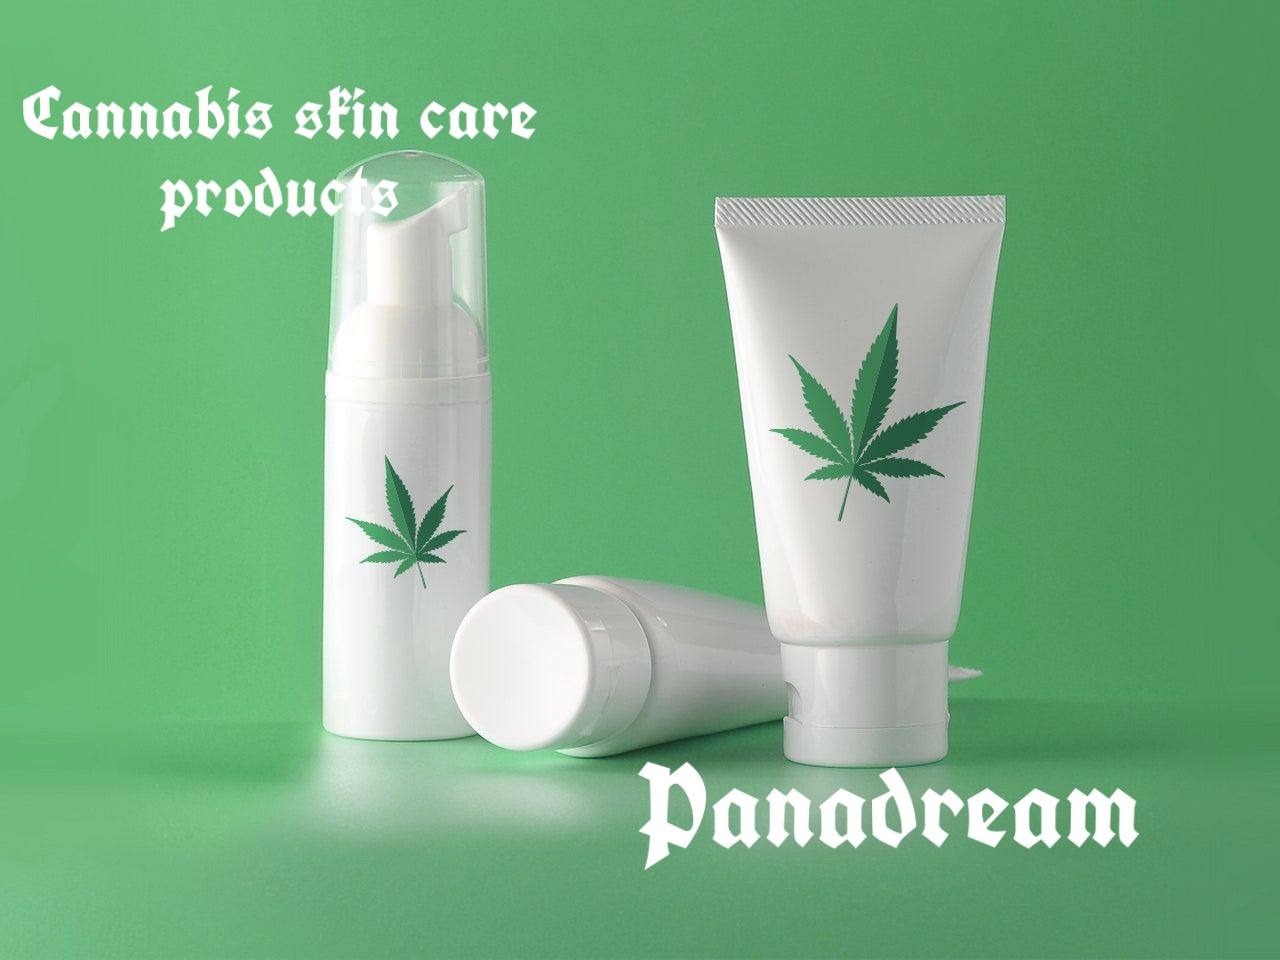 Сannabis skin care products